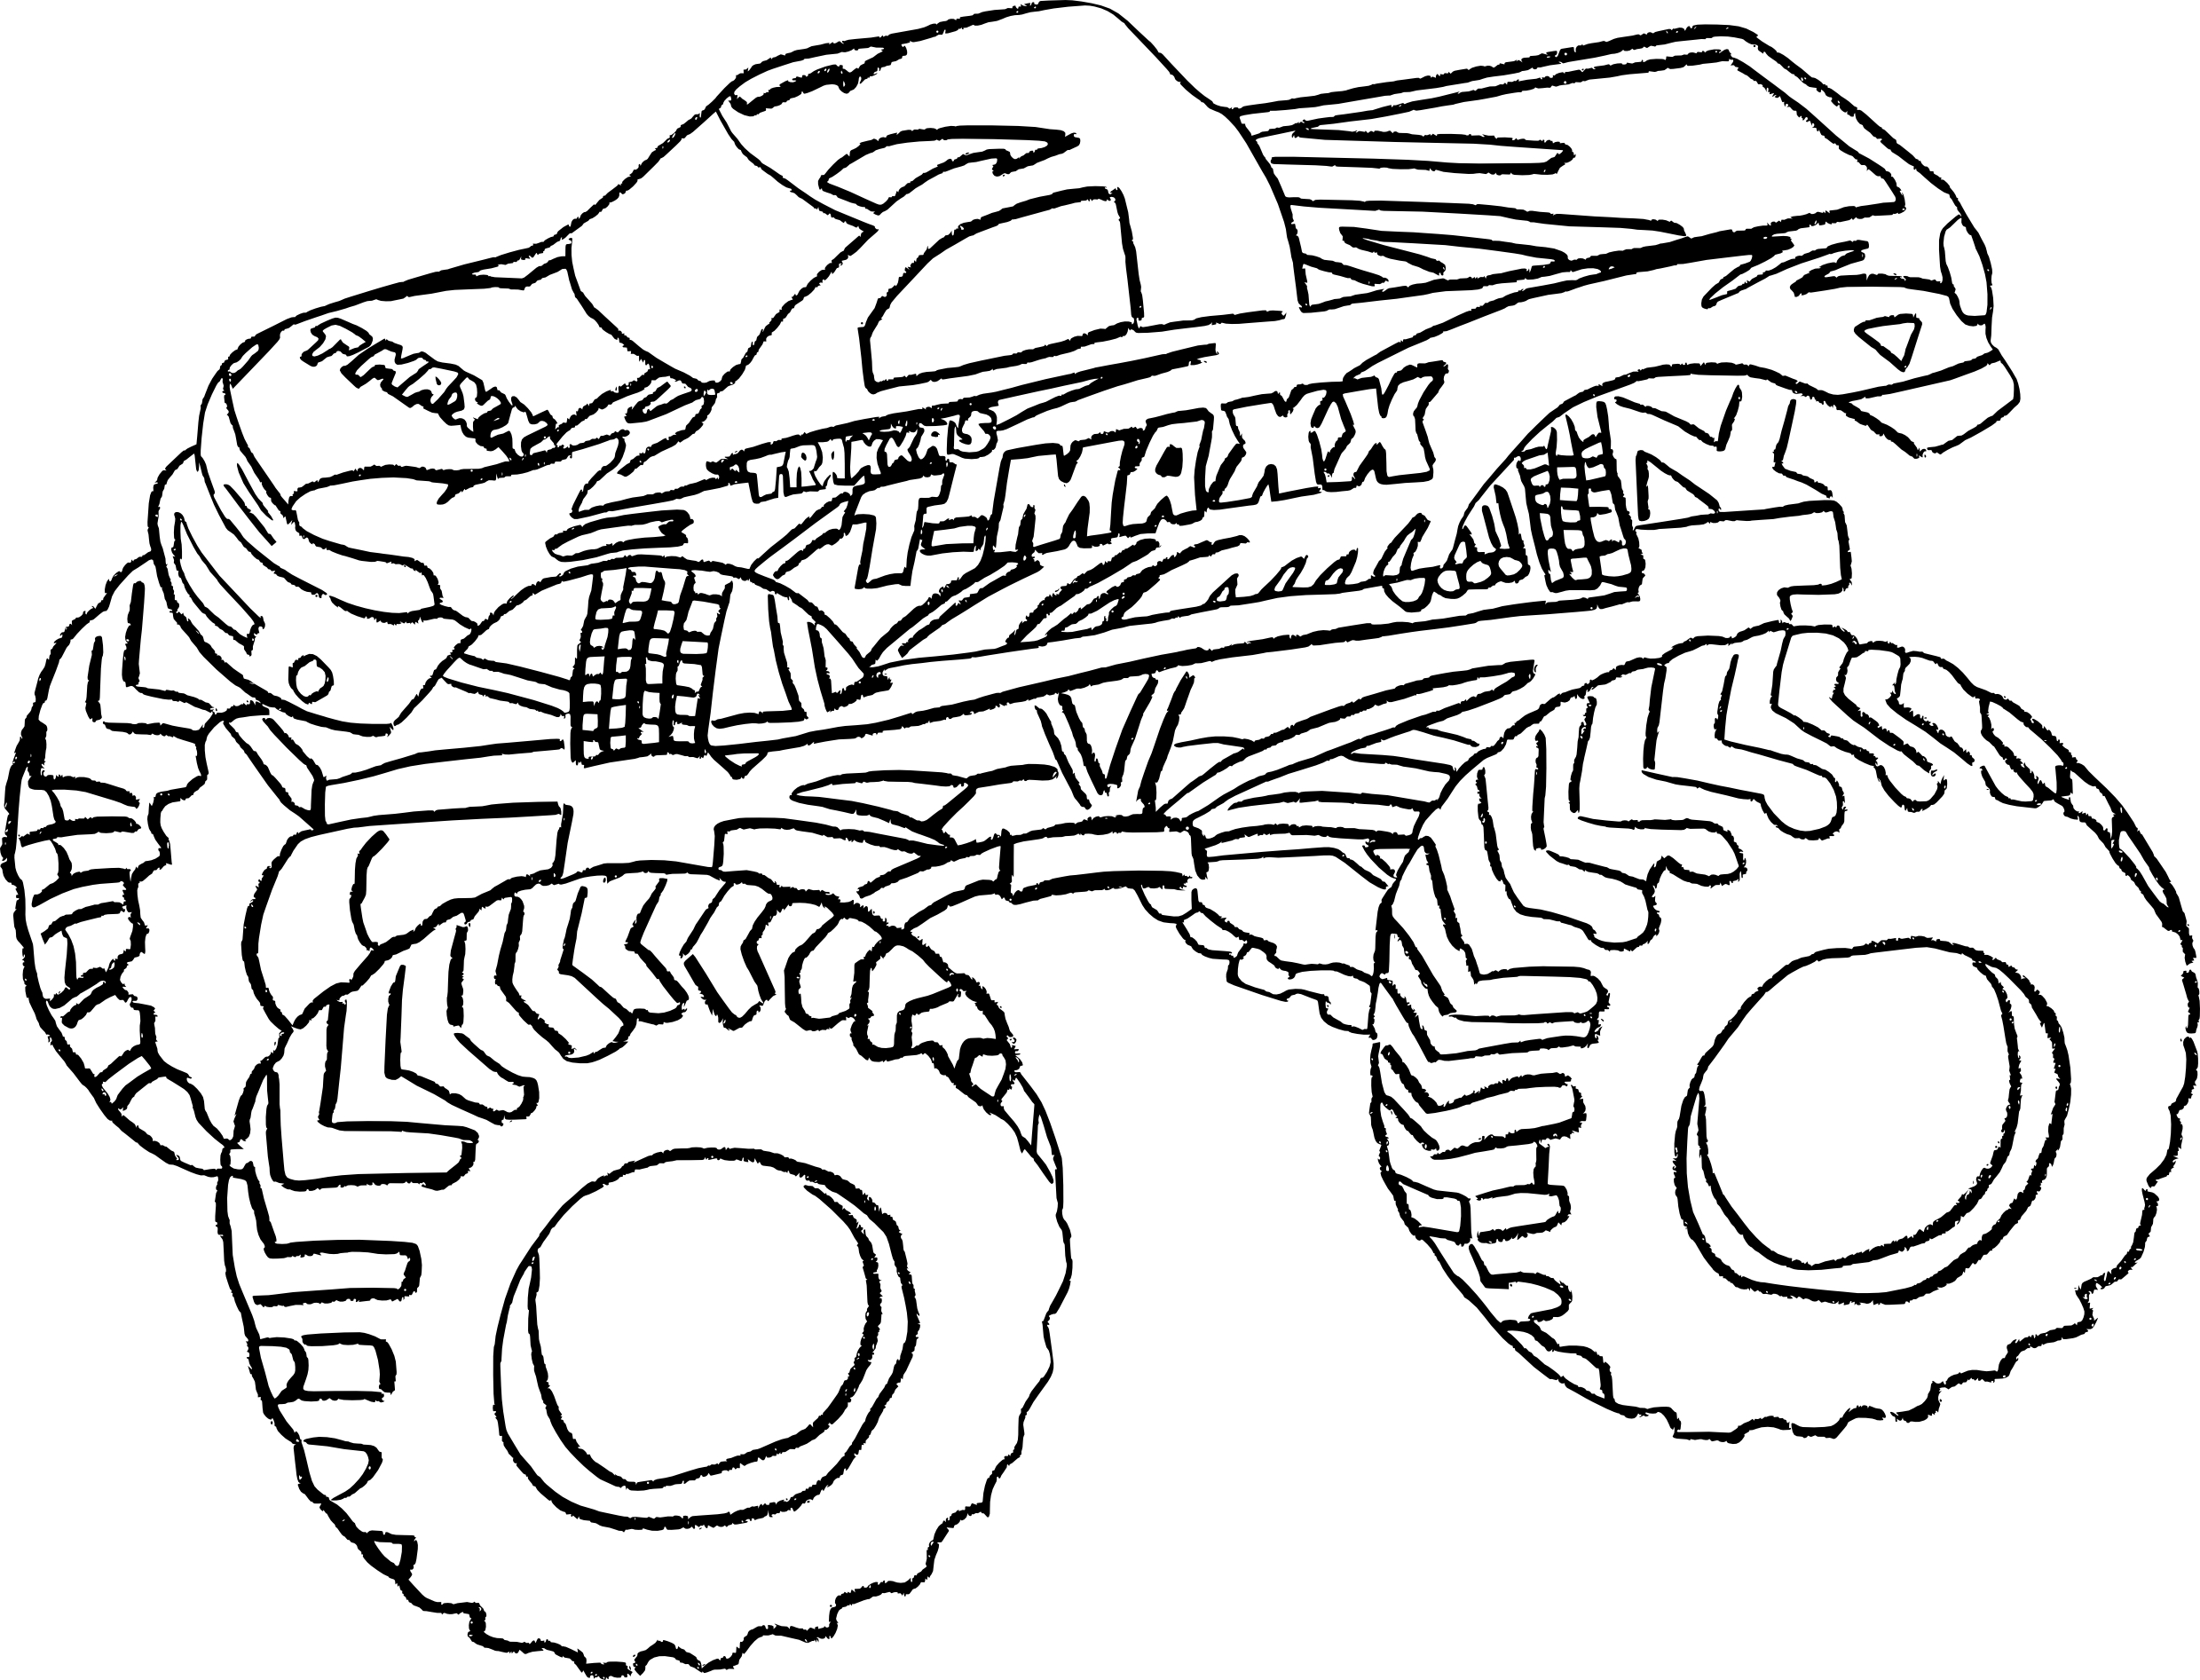 Coloriage monster truck et dessin imprimer - Coloriage de monster ...